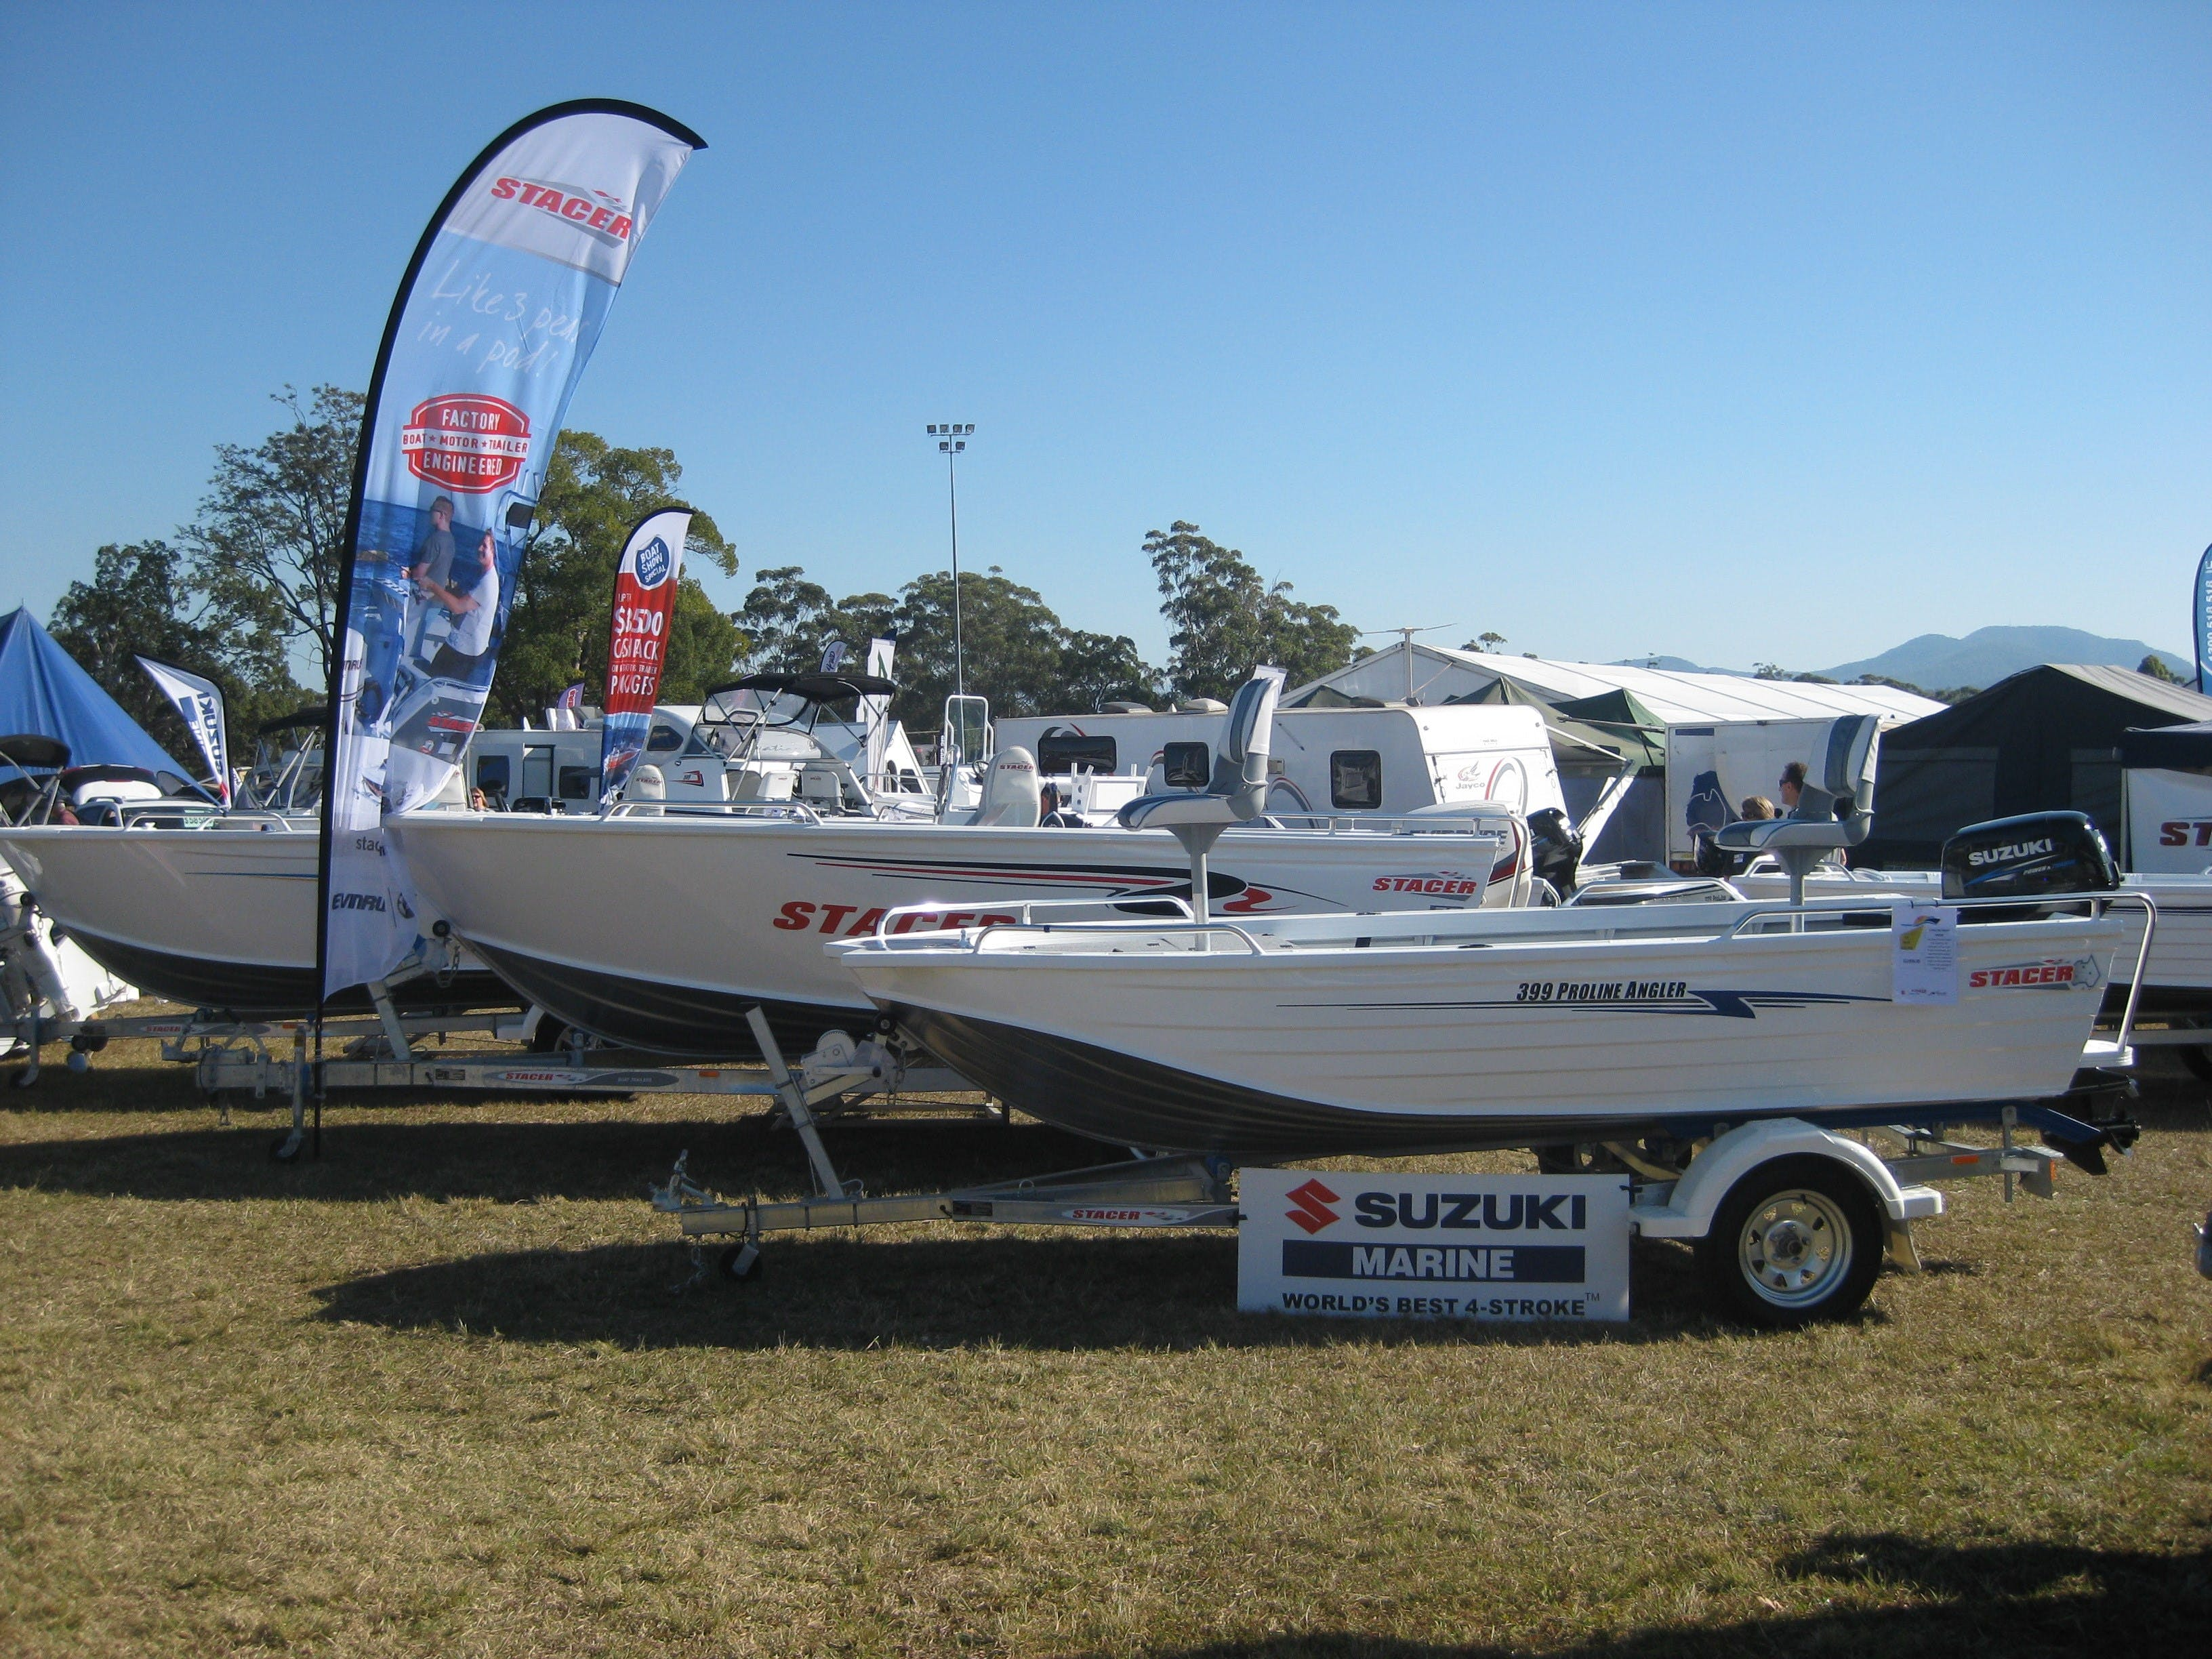 Mid North Coast Caravan Camping 4WD Fish and Boat Show - Broome Tourism